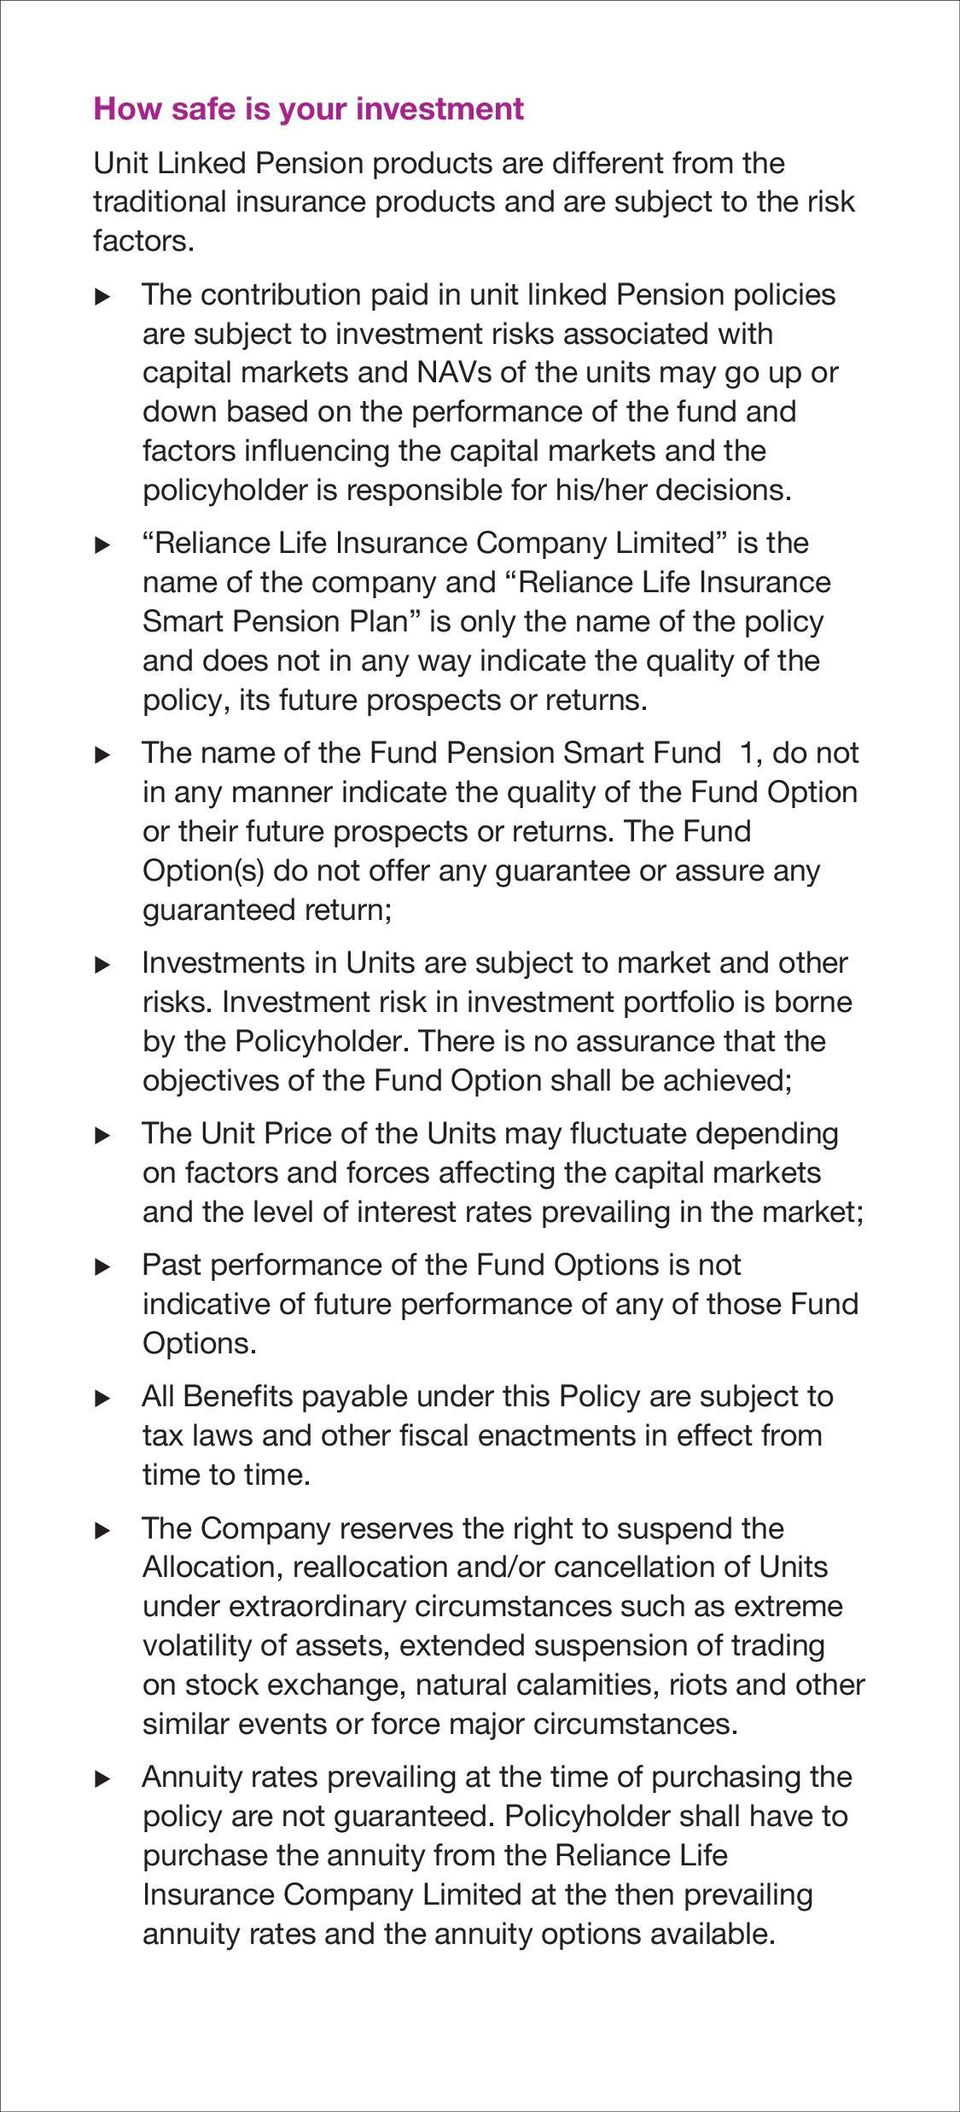 factors influencing the capital markets and the policyholder is responsible for his/her decisions.